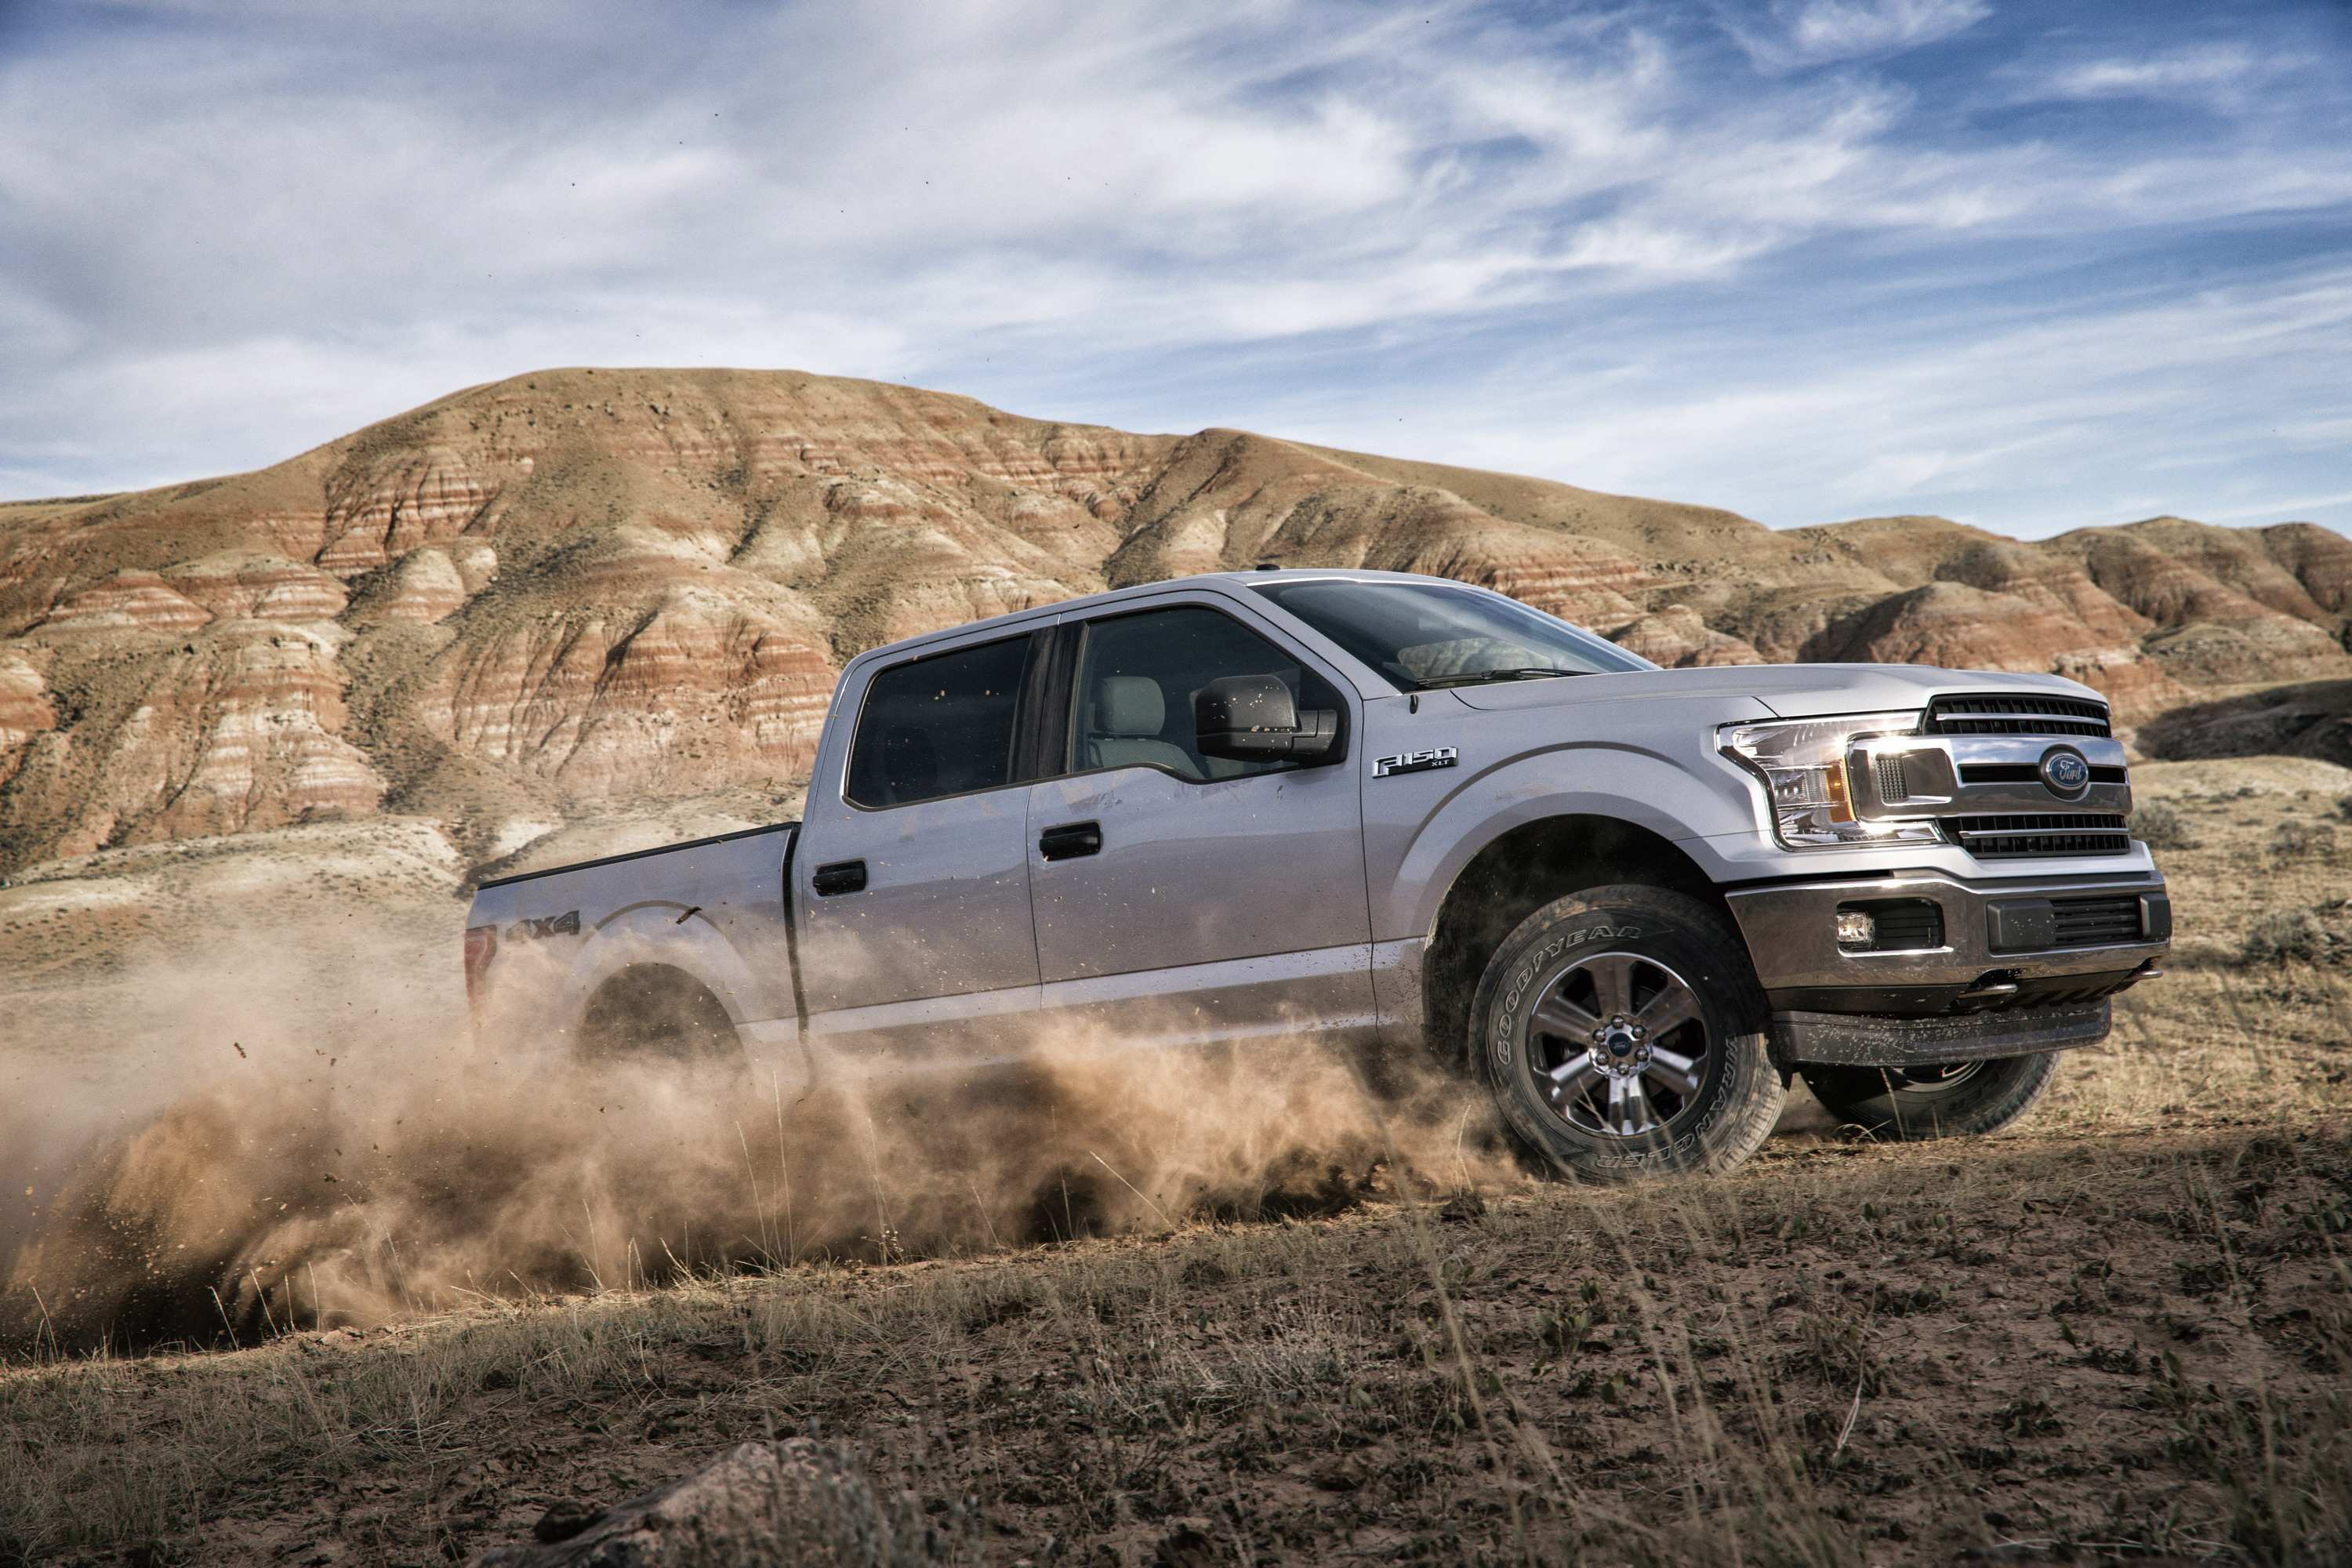 61 All New Ford Diesel Wallpaper Specs with Ford Diesel Wallpaper